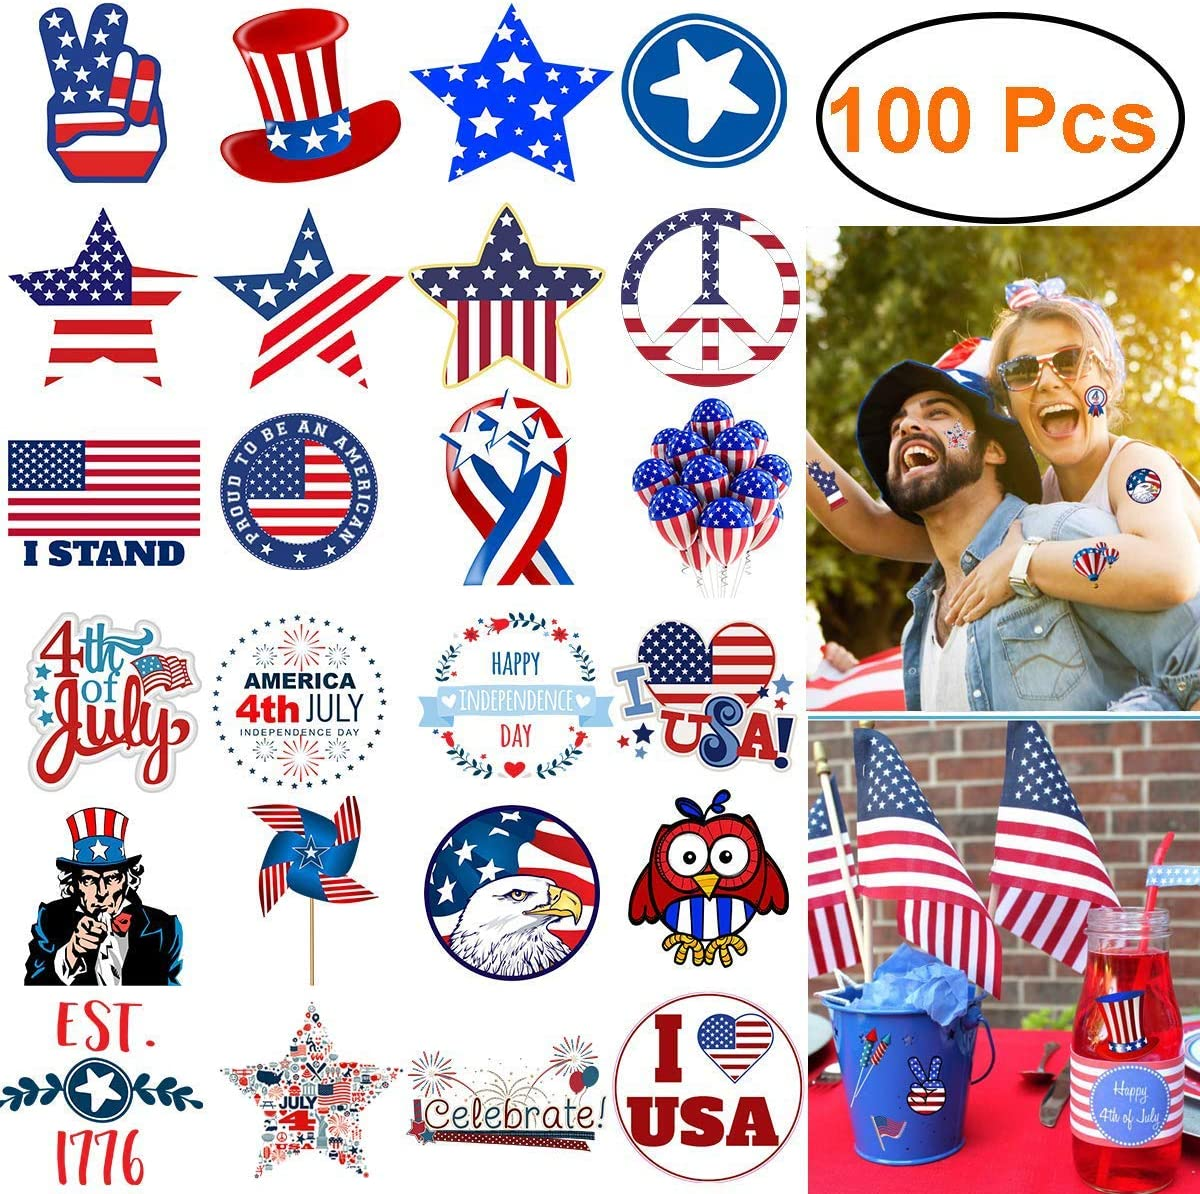 Decorations Sticker 100pcs Waterproof Vinyl Stickers for Door,Window,Car,Laptop, Motorcycle,Bicycle,Luggage, Skateboard Vinyl Graffiti Stickers Decal Patches (July 4th Stickers)